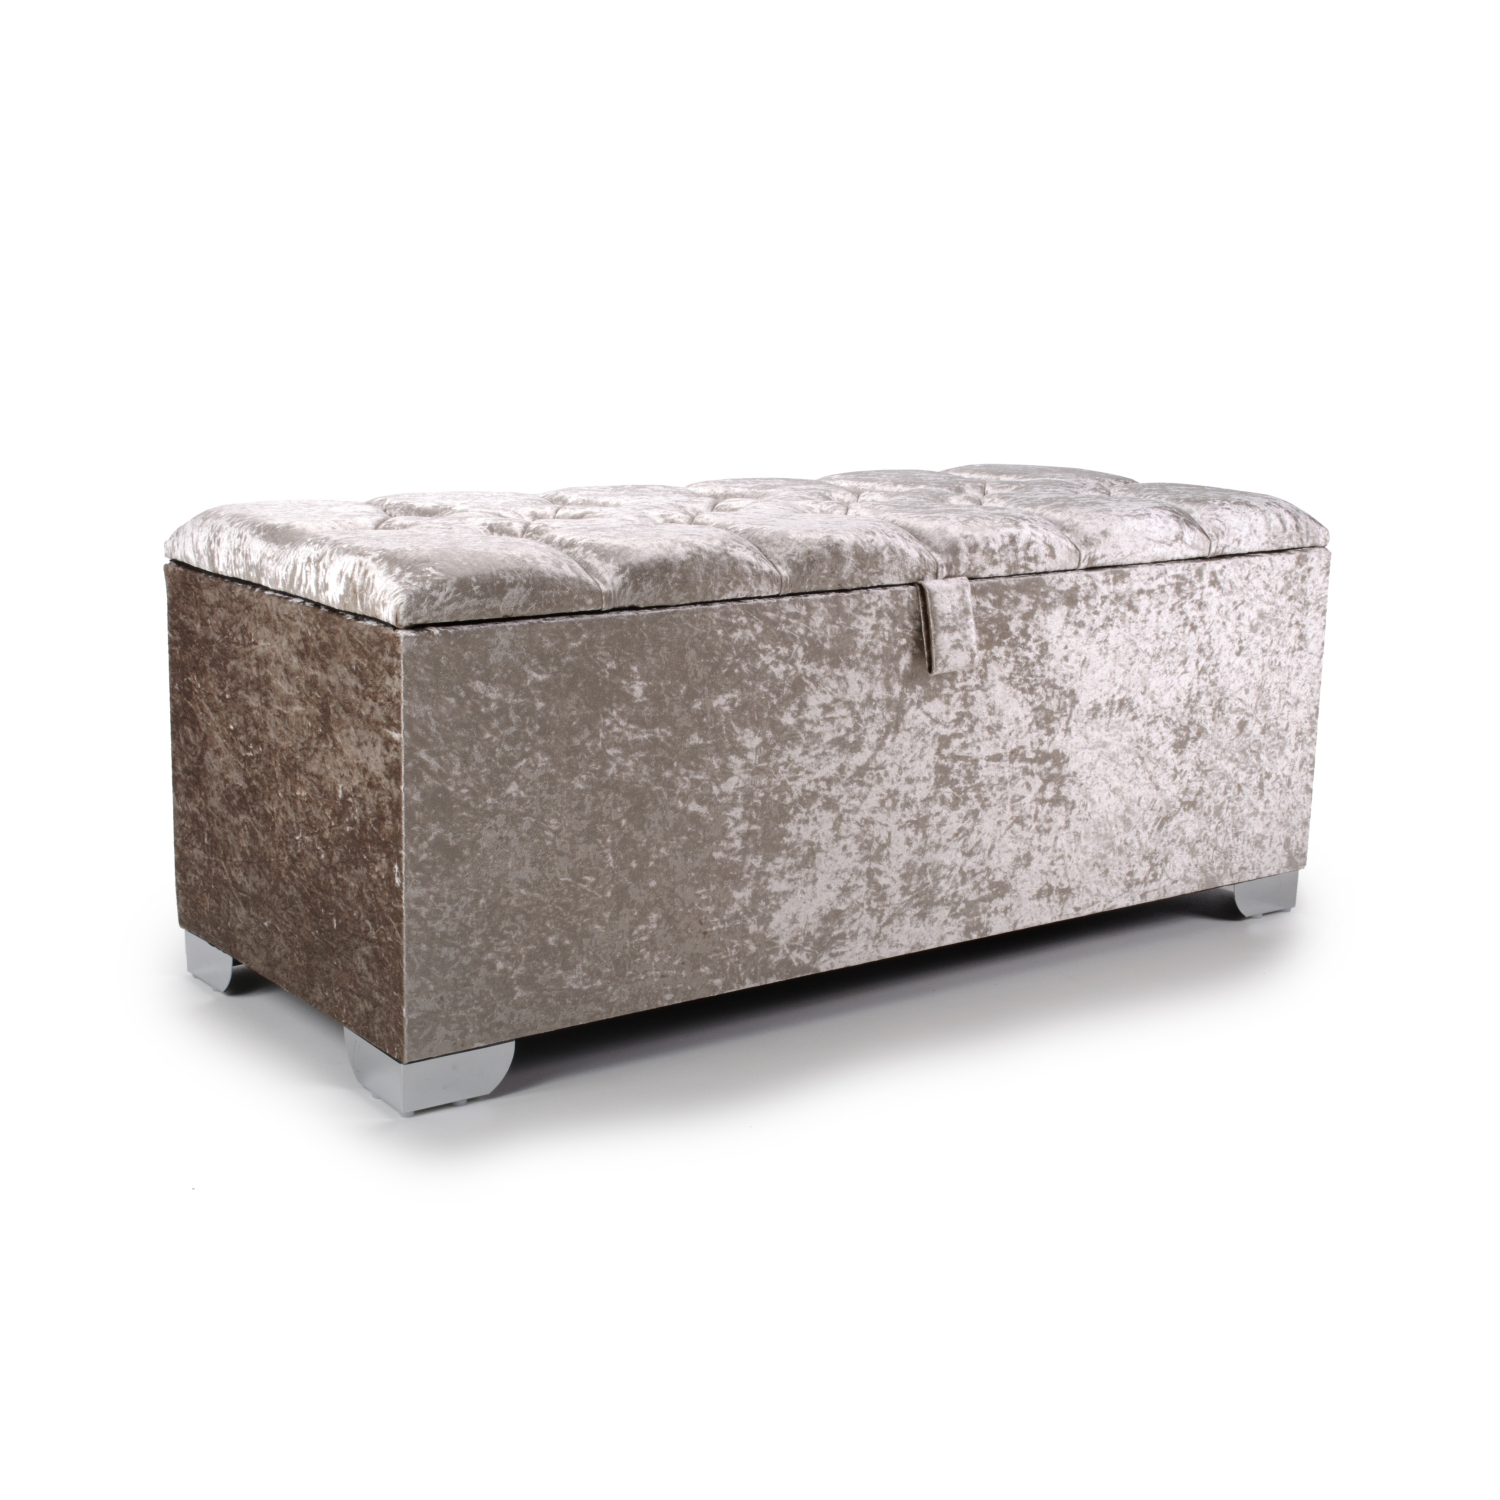 4ft mink quilted crystal ottoman